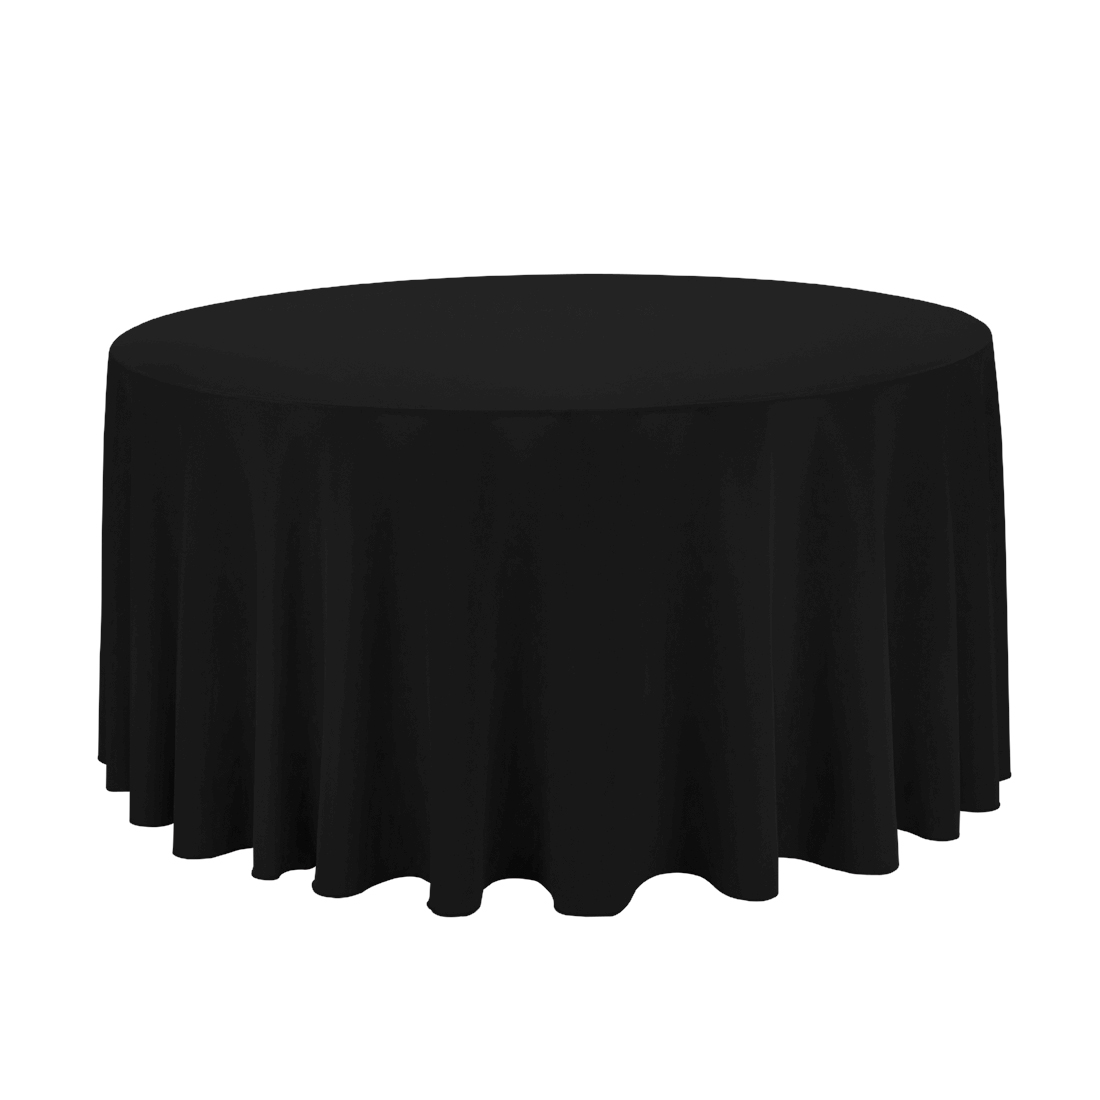 Black Table Cloth 118 Weddings Events Round Table